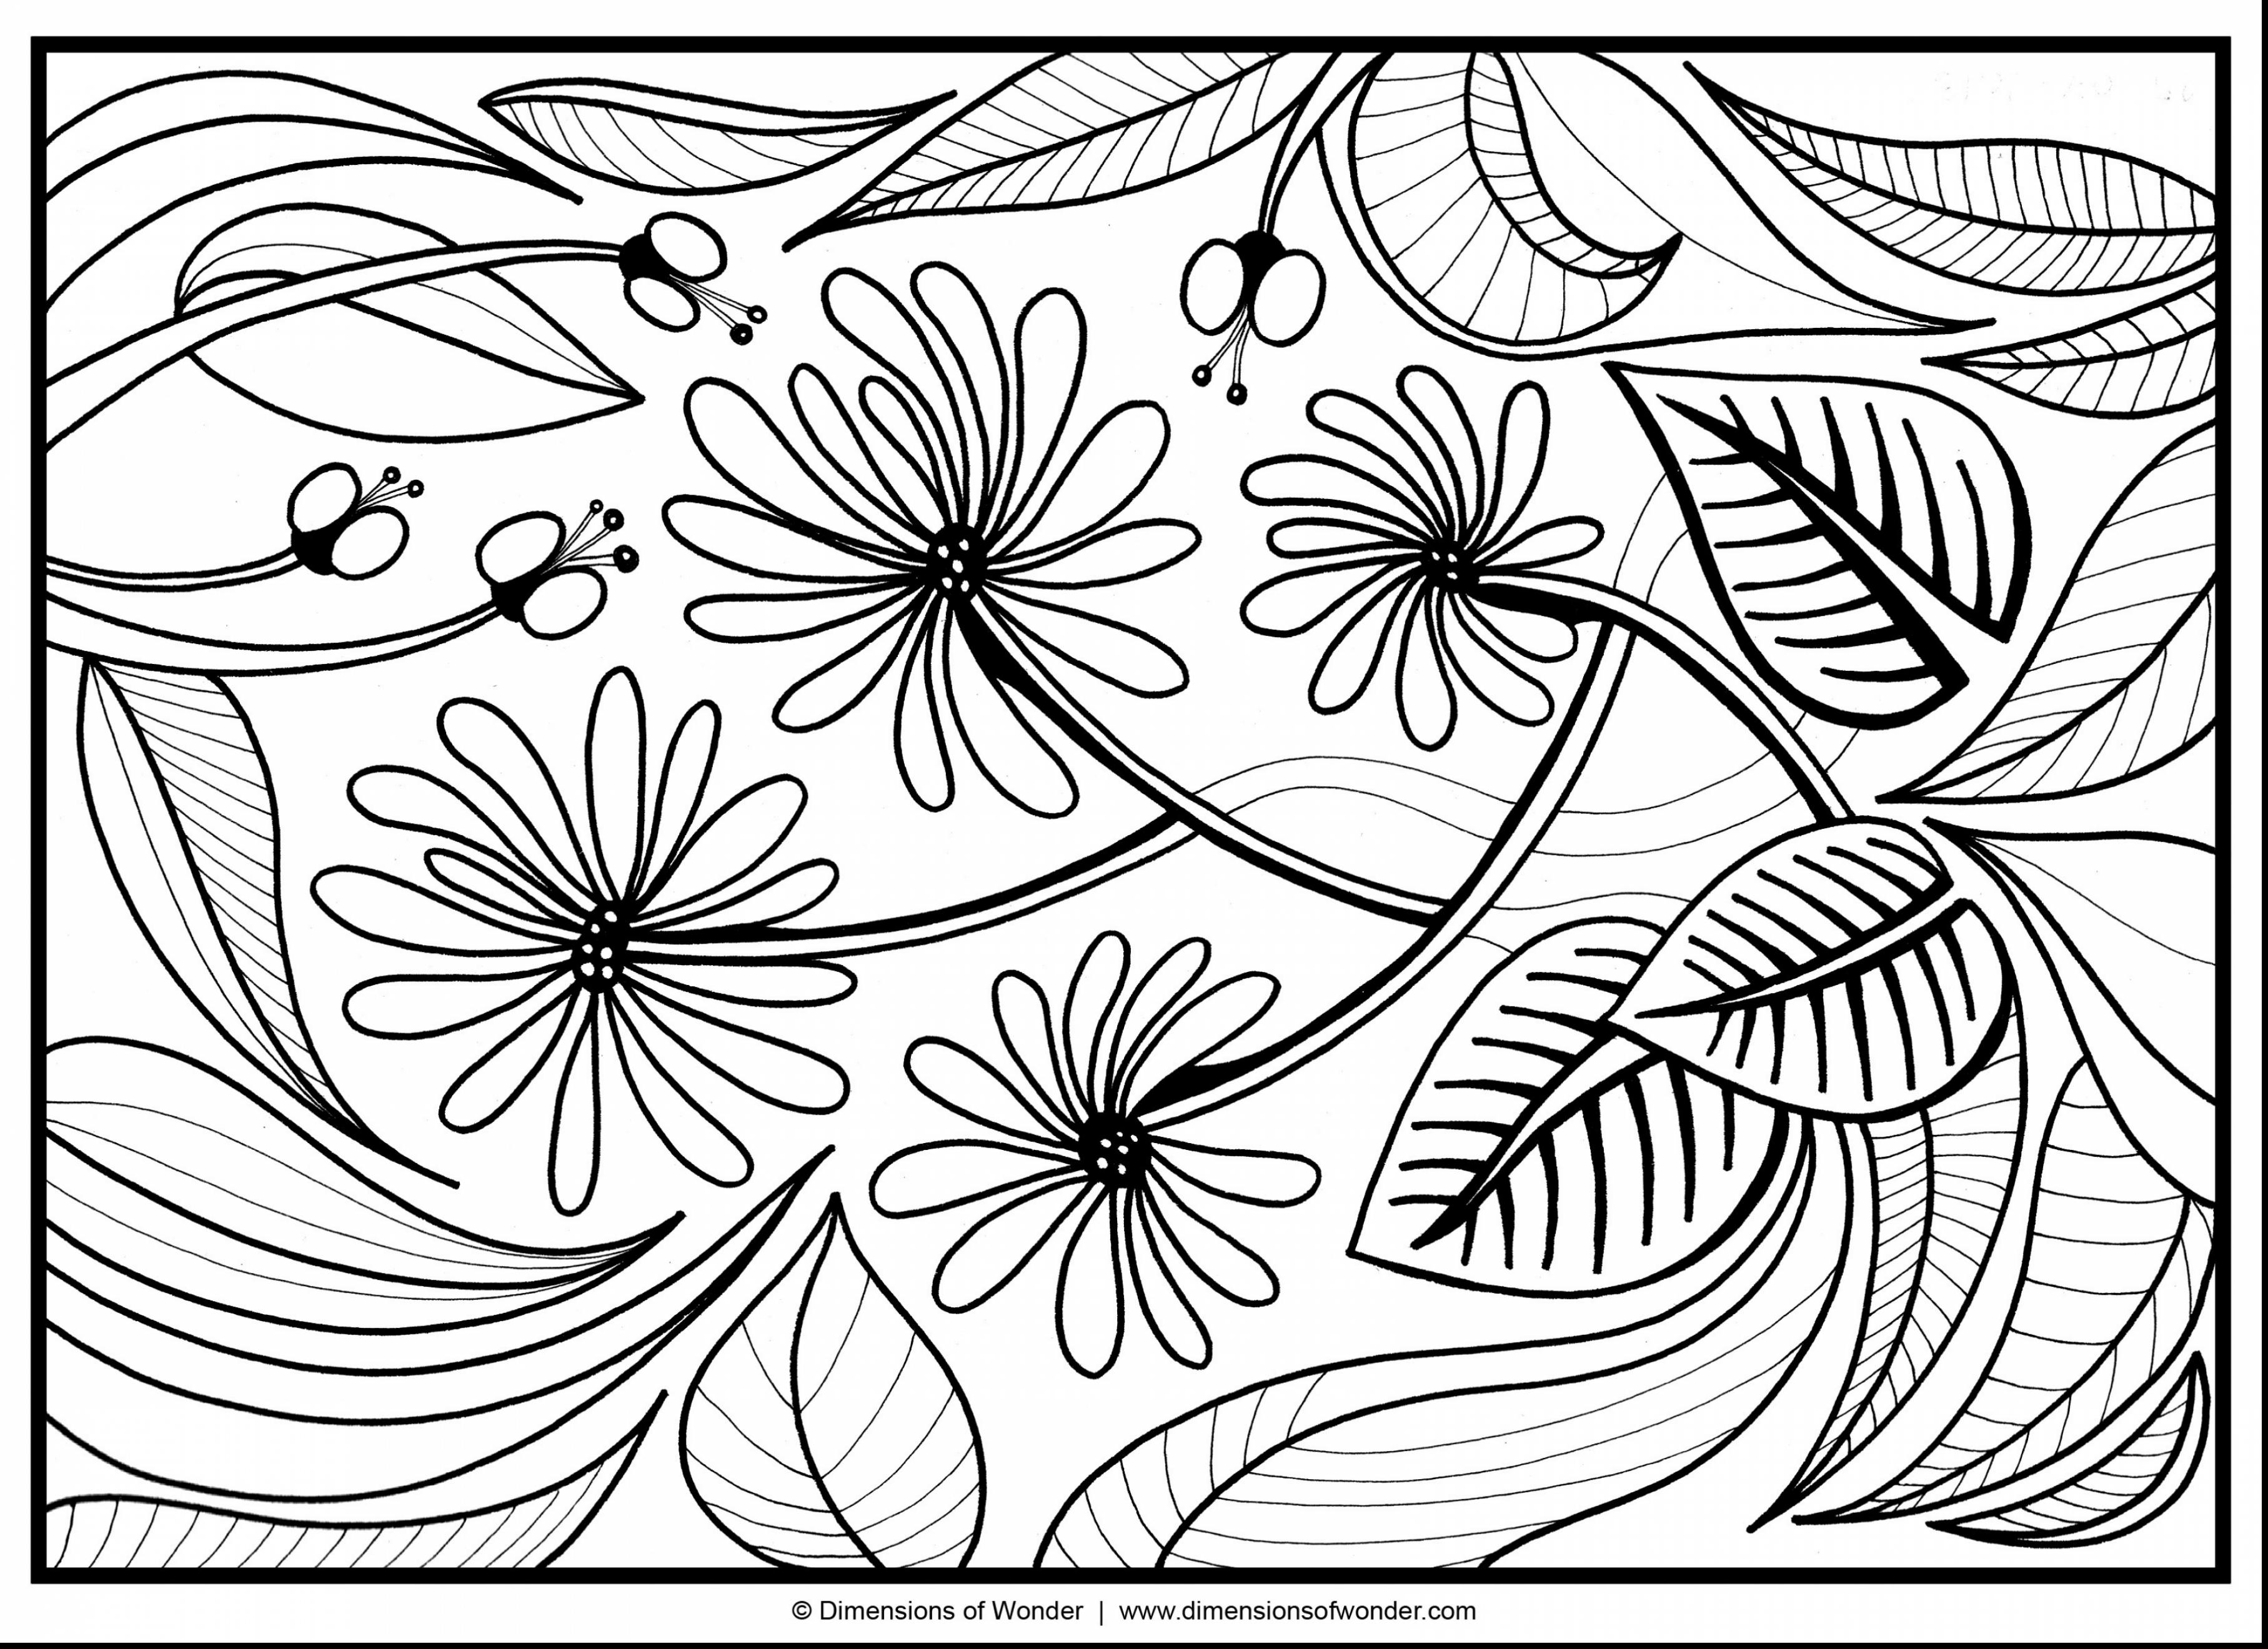 3630x2640 Awesome Impressive Abstract Flower Coloring Pages For Adults